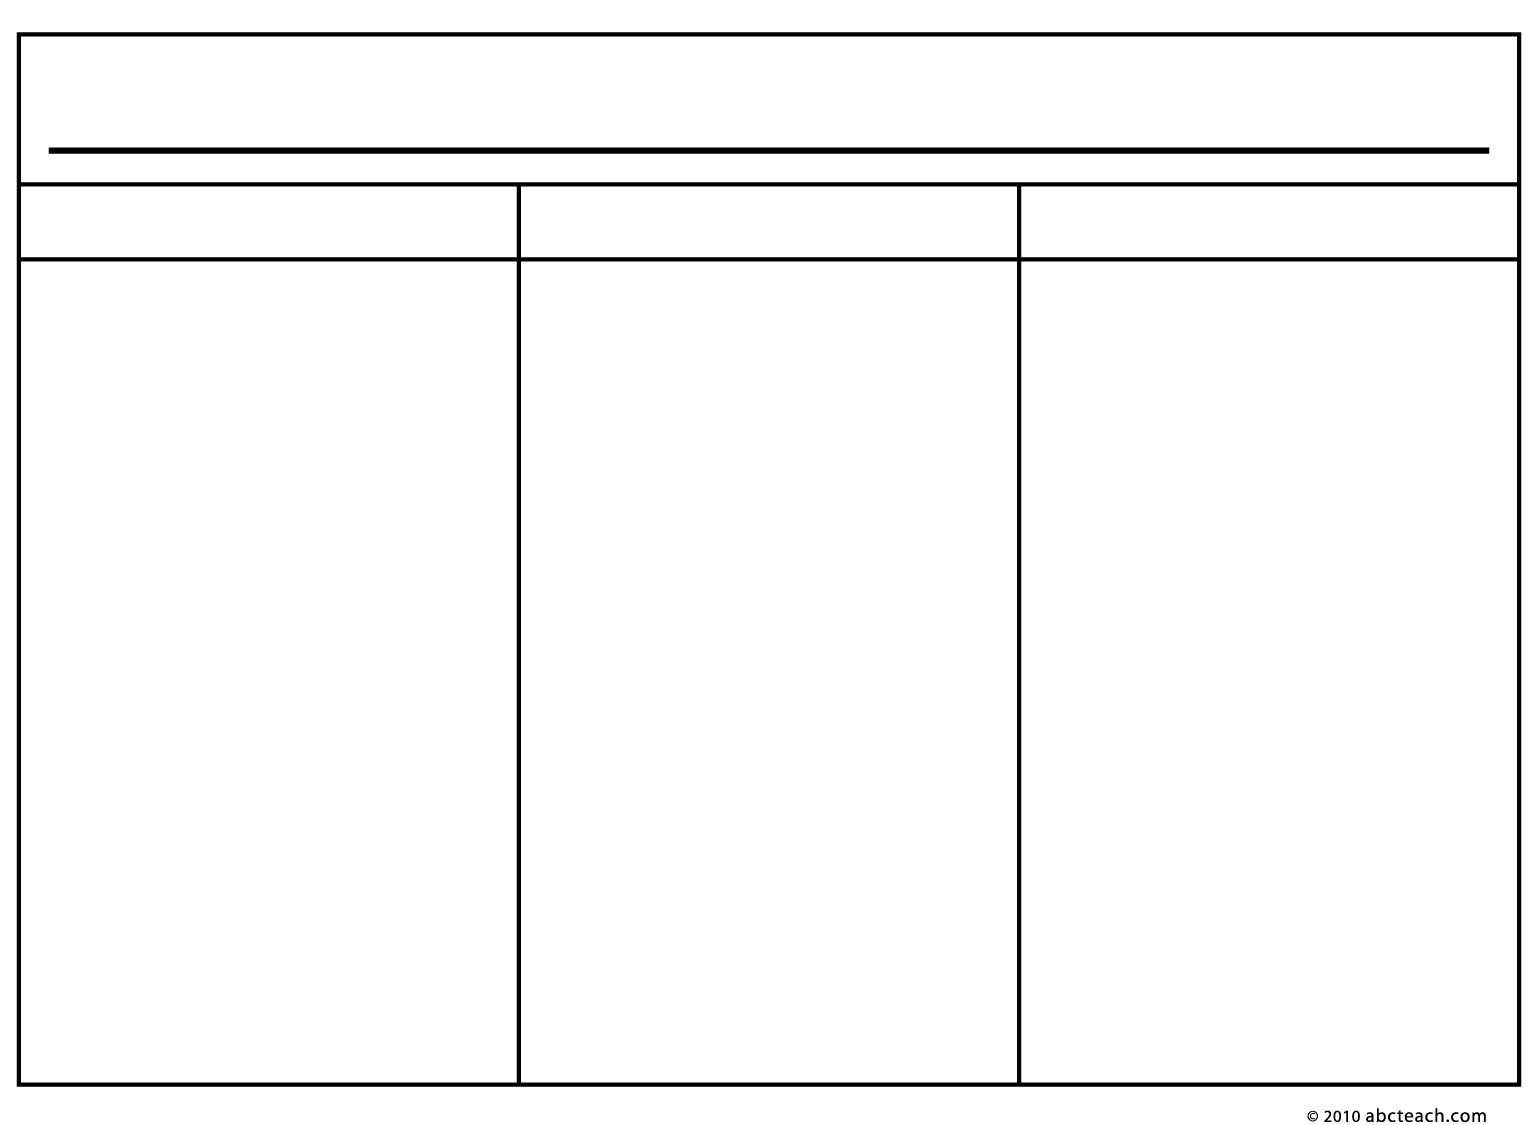 Printable Spreadsheet Paper Throughout Printable Lined Paper With 3 Columns  Download Them Or Print